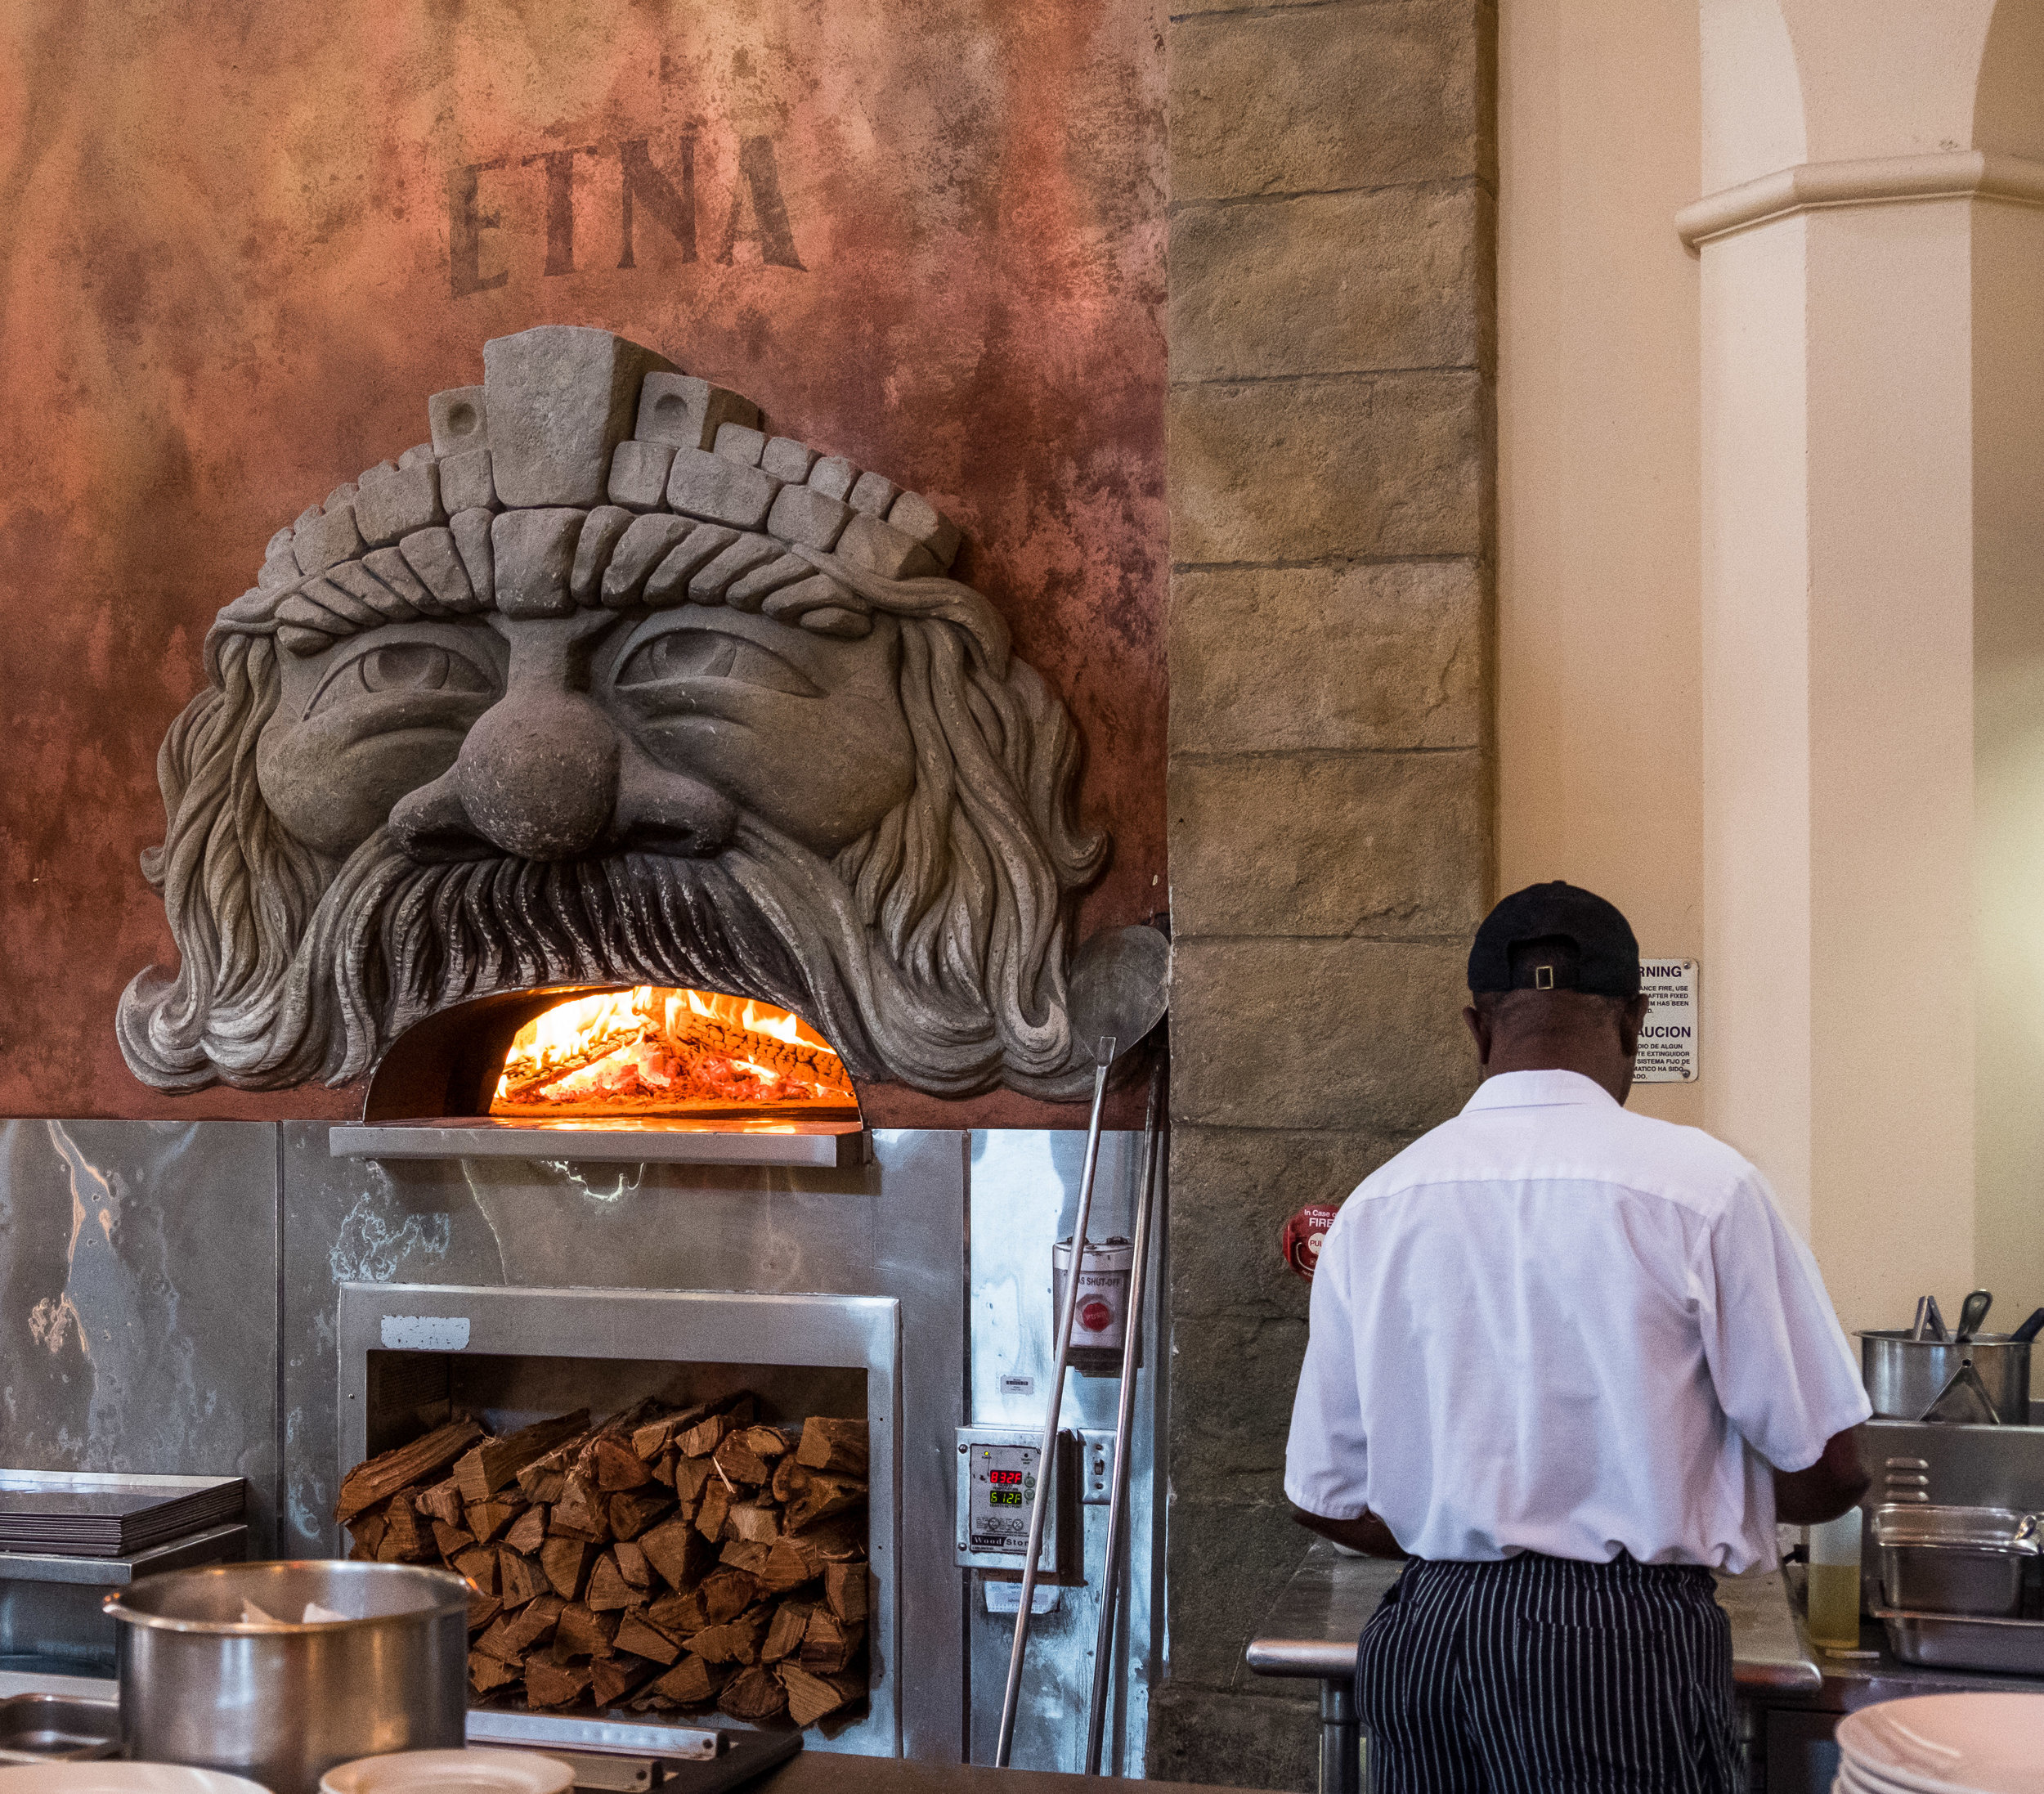 Hard not to like a place that features ovens like this!